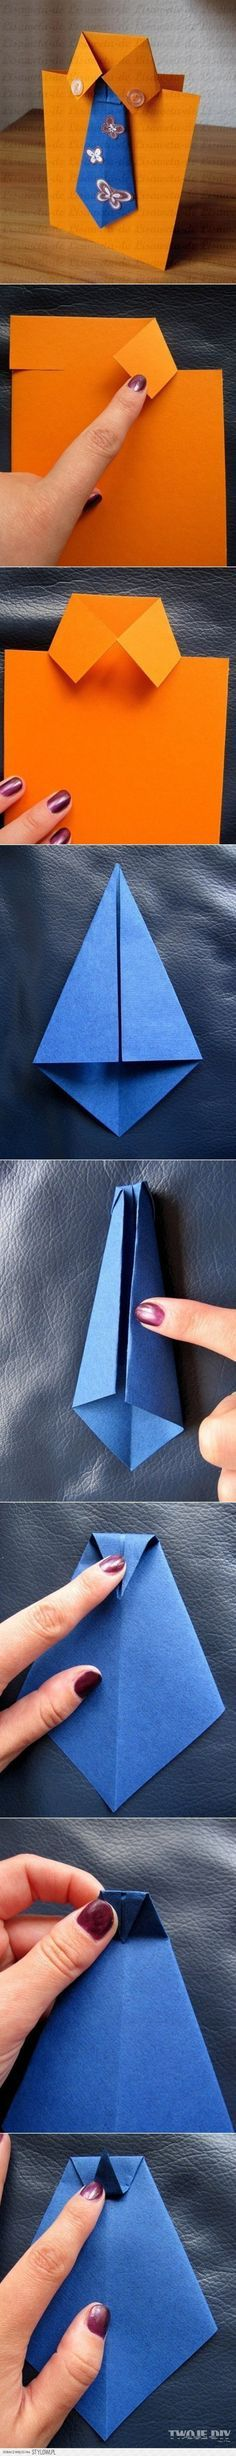 Fathers Day Card Idea: How to make a shirt and tie greeting card cool shirt diy tie diy crafts do it yourself diy projects greeting card Easy Diy Crafts, Crafts For Kids, Arts And Crafts, Paper Crafts, Card Crafts, Craft Kids, Diy Father's Day Cards, Men's Cards, Making Shirts